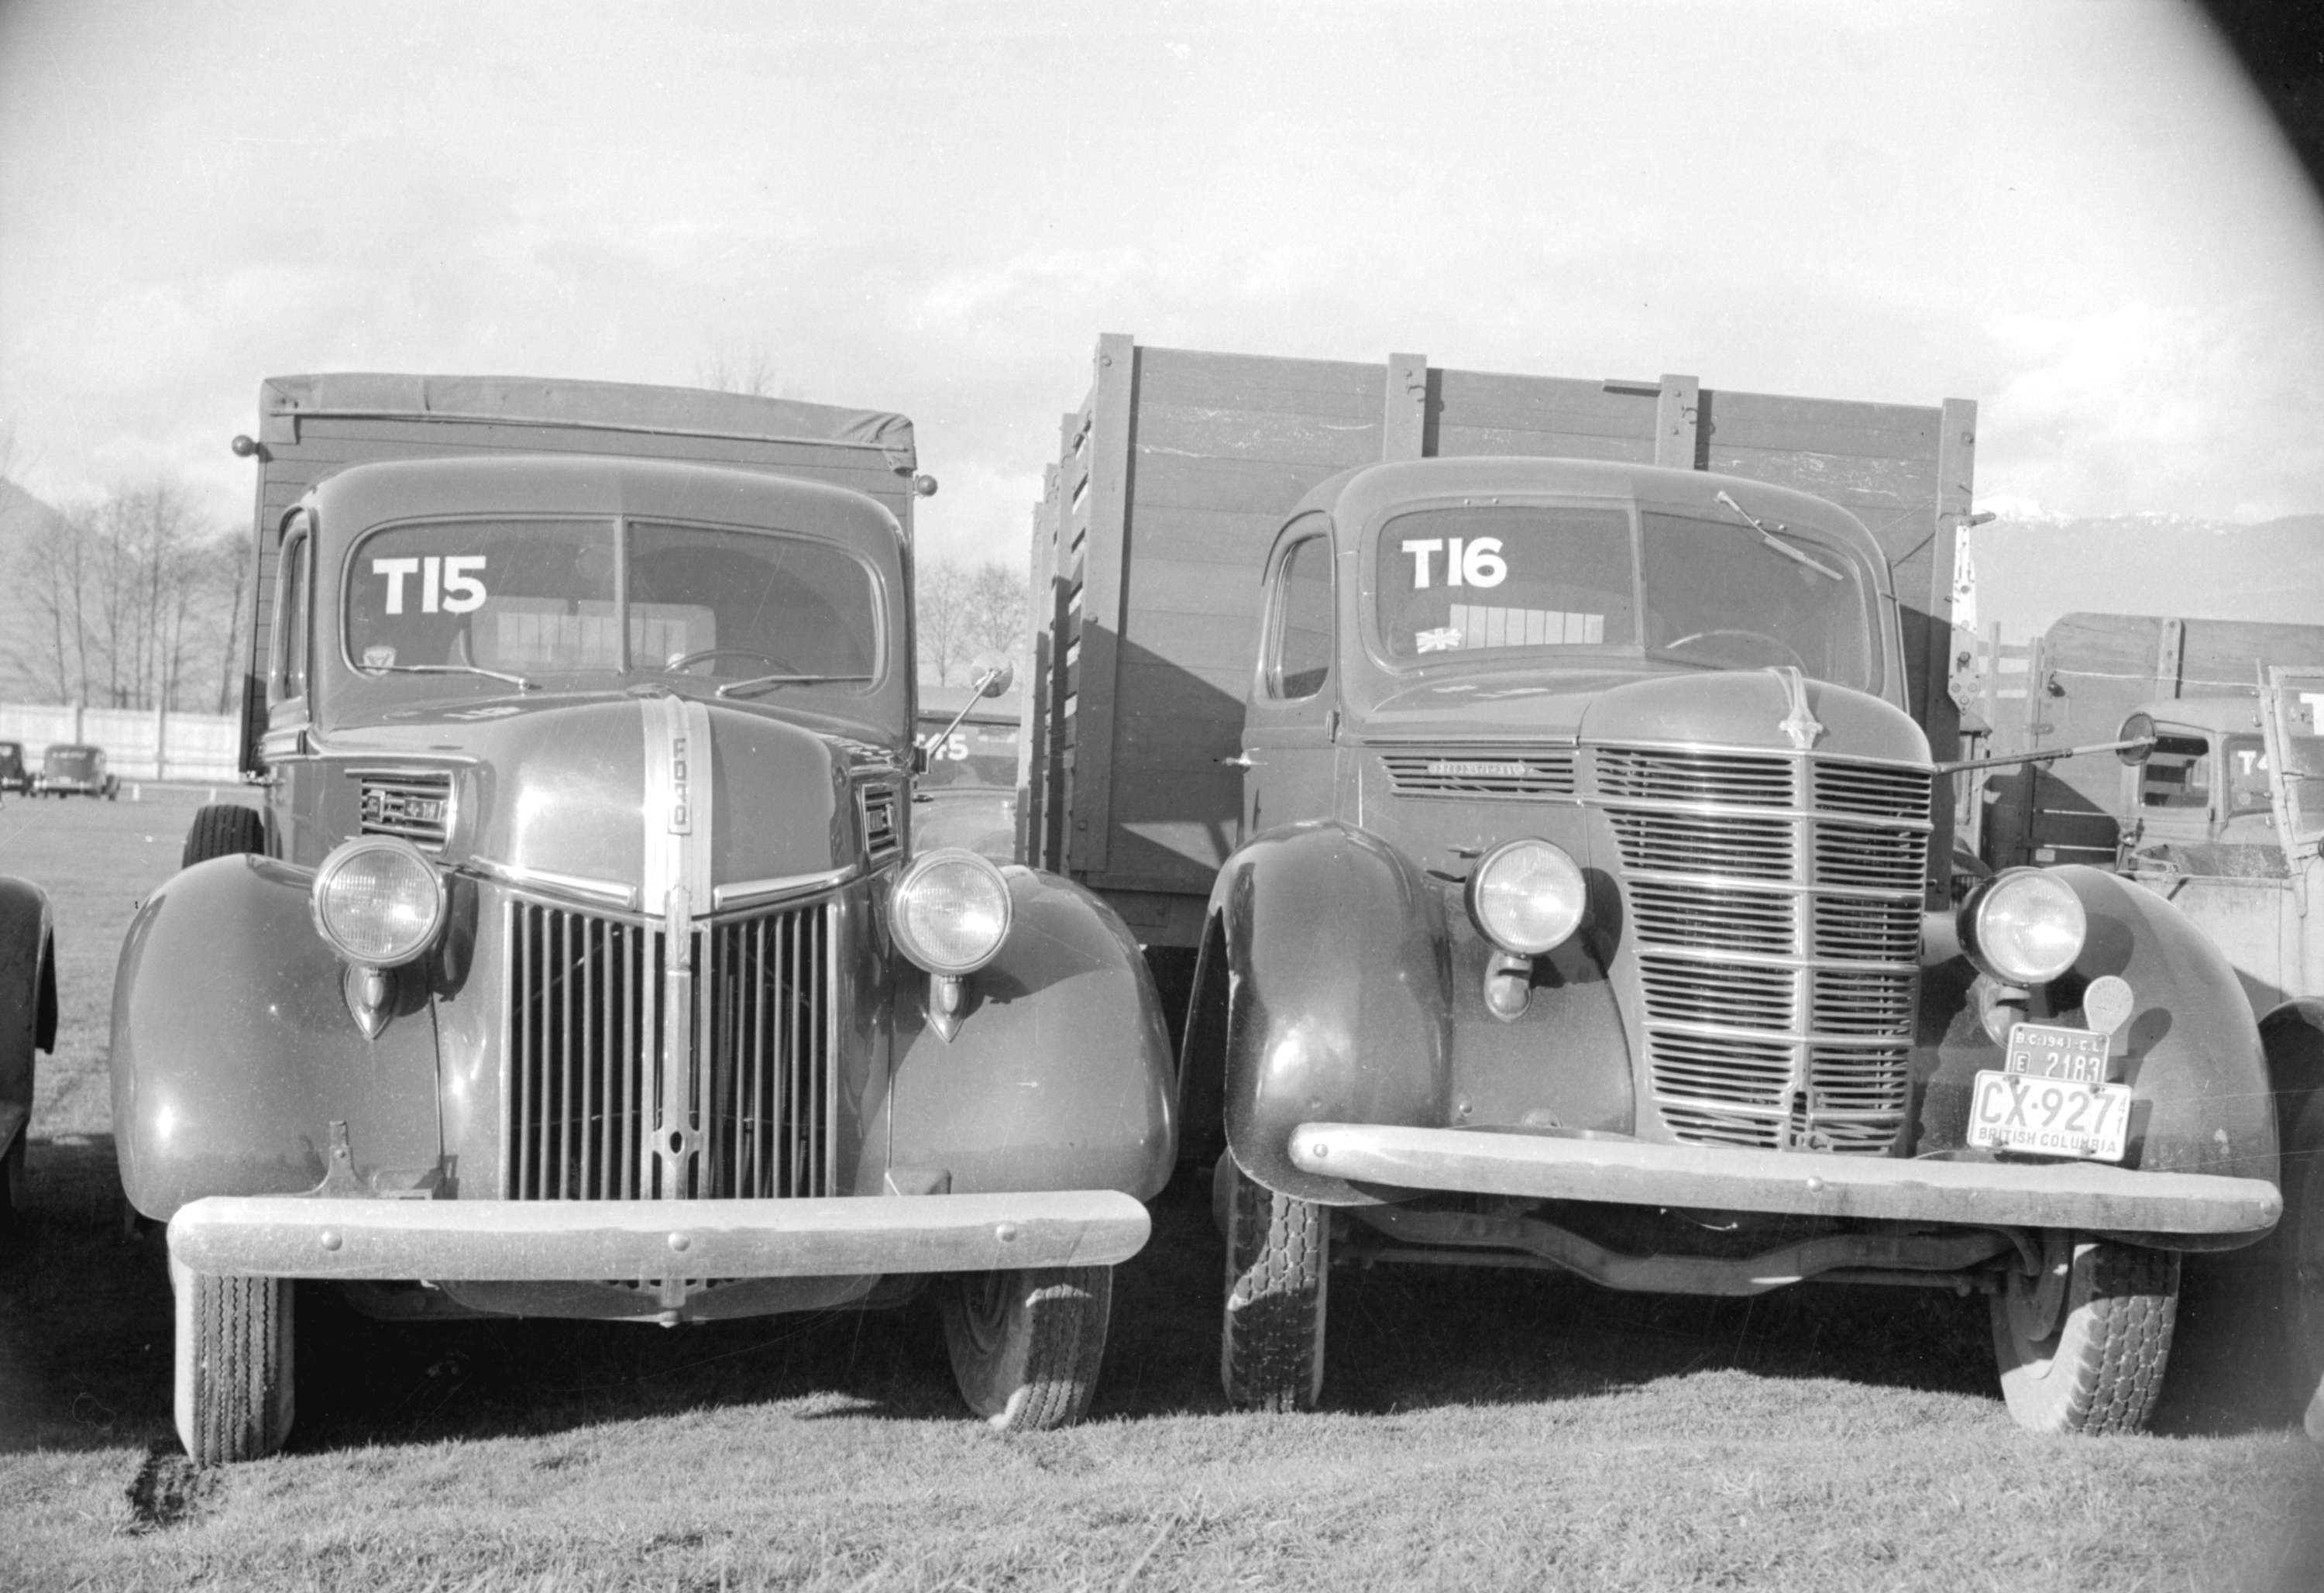 Two trucks, confiscated from Japanese nationals, at Hastings Park; AM1184-S3-: CVA 1184-87